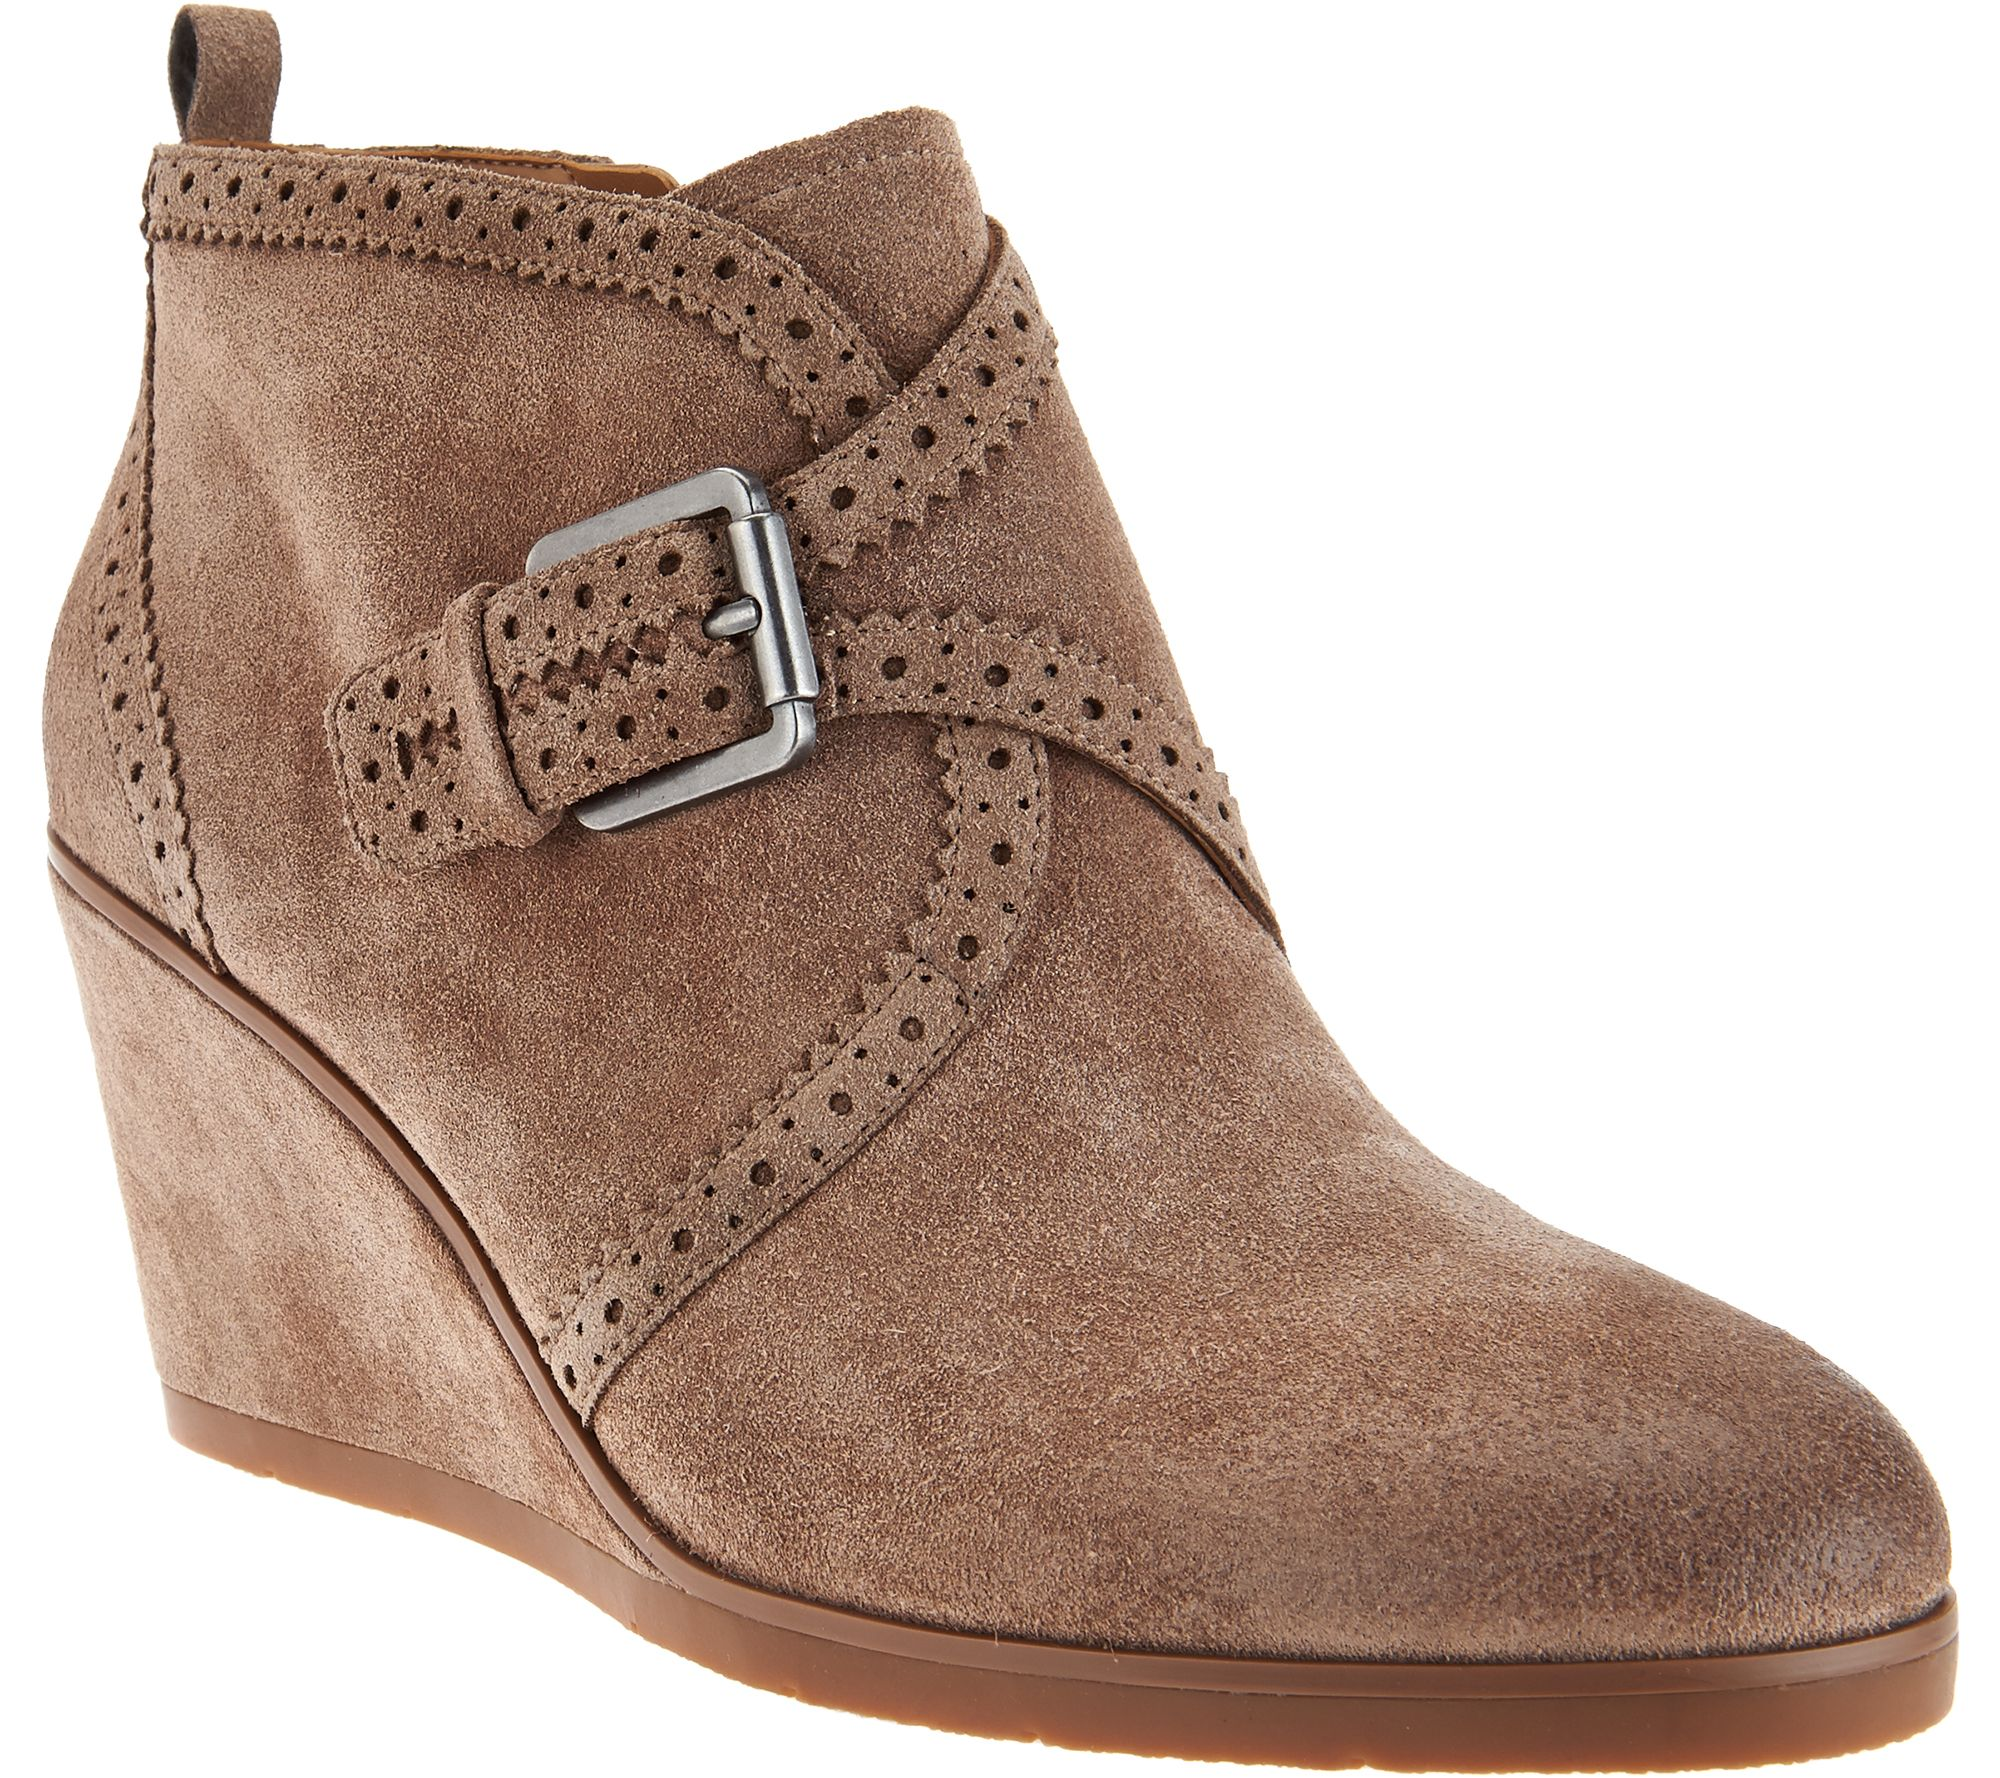 franco sarto boots franco sarto suede monk strap wedge boots - arielle - page 1 - qvc.com YHJXVAY